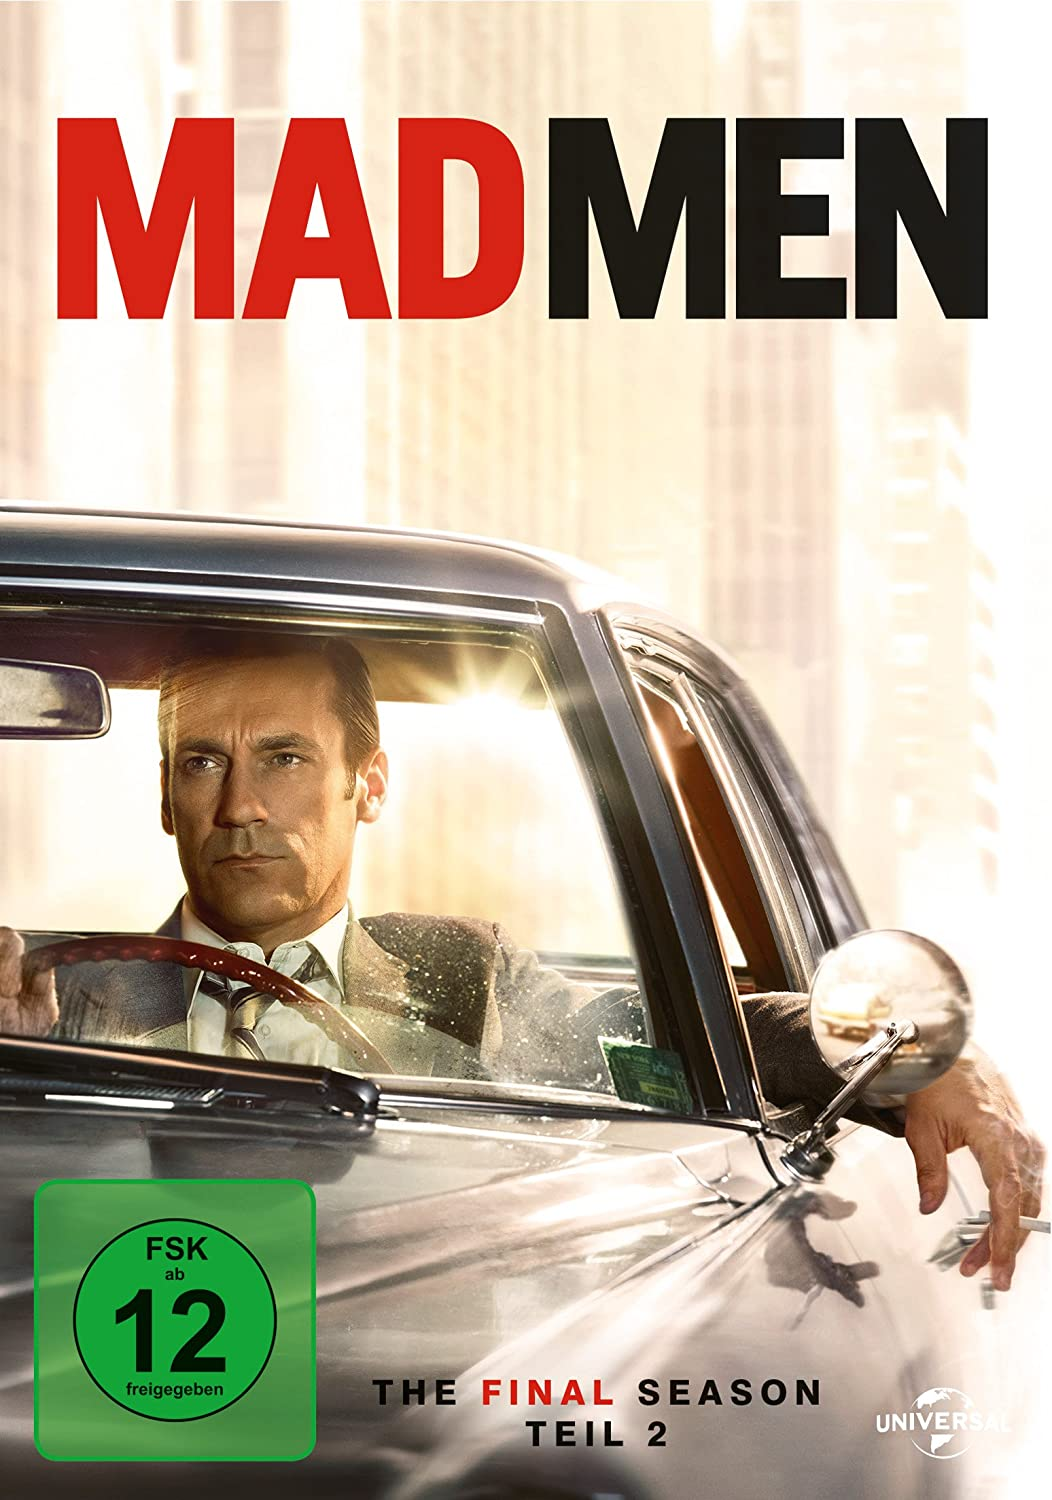 Mad Men - The Final Season 7.2 [3 DVDs]: Amazon.de: Jon Hamm ...